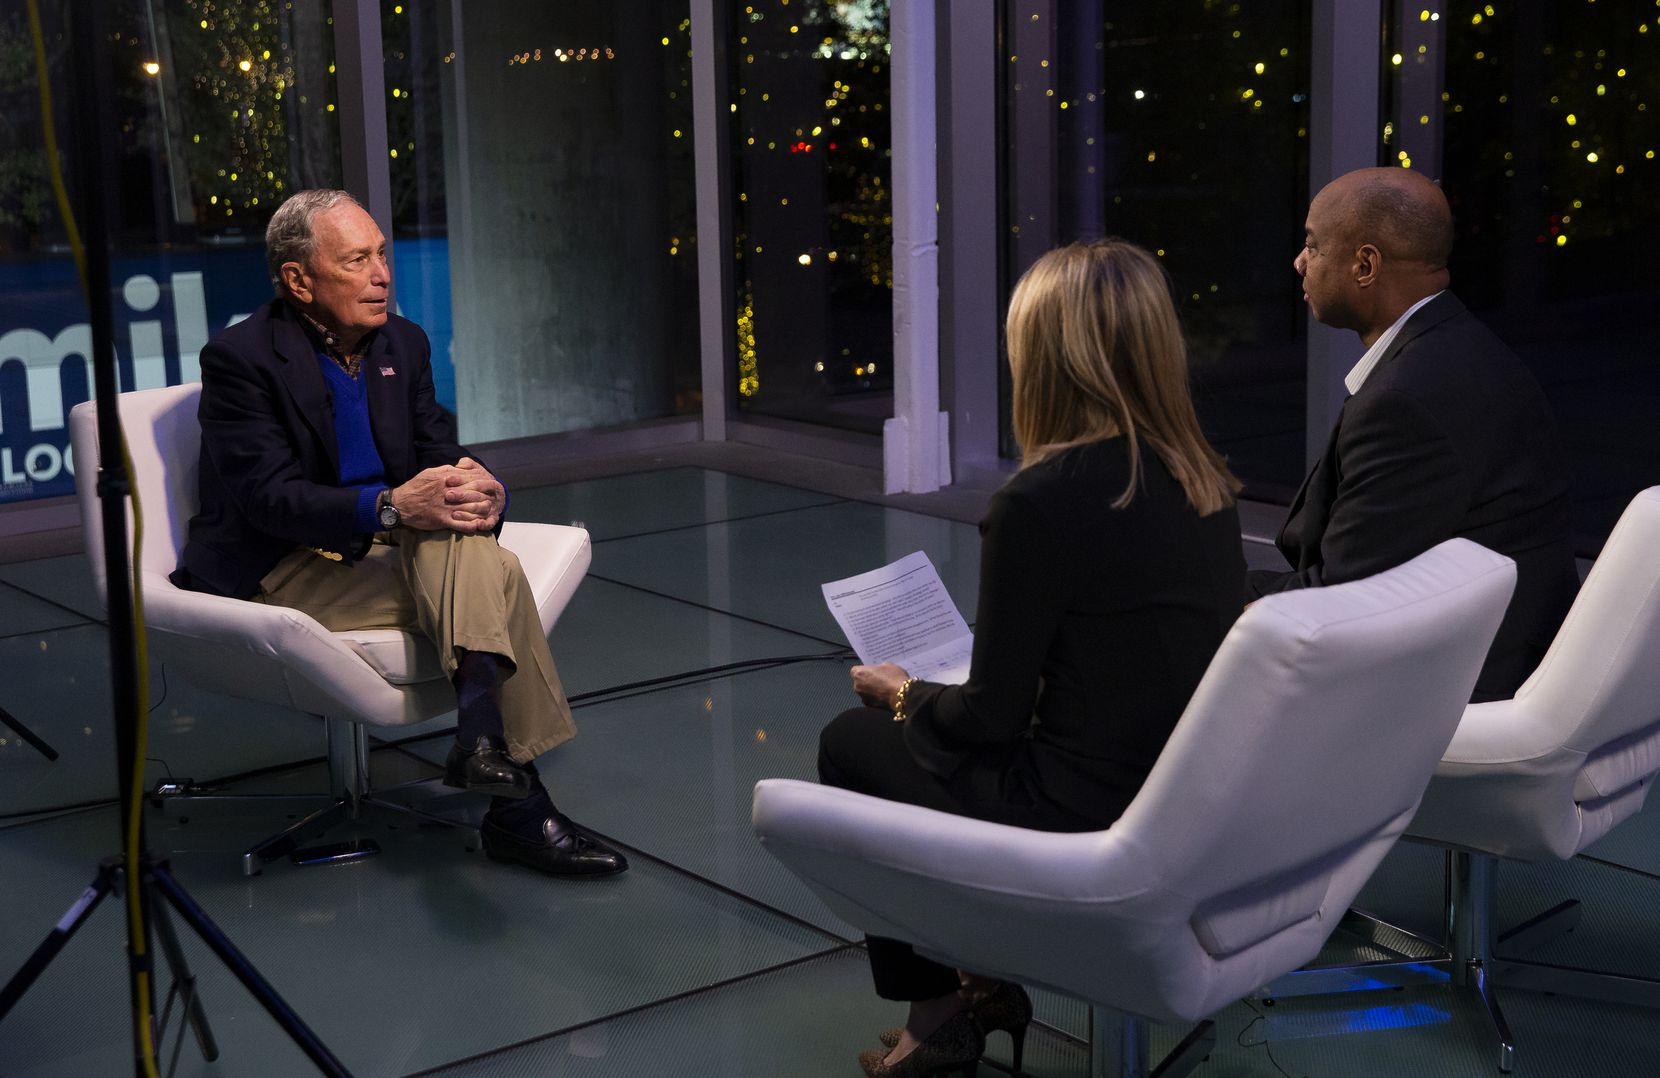 Presidential candidate and former New York Mayor Mike Bloomberg sits down with Gromer Jeffers Jr. of the DMN and Julie Fine of NBC 5 after a campaign rally on Jan. 11, 2020 in Dallas. (Juan Figueroa/ The Dallas Morning News)